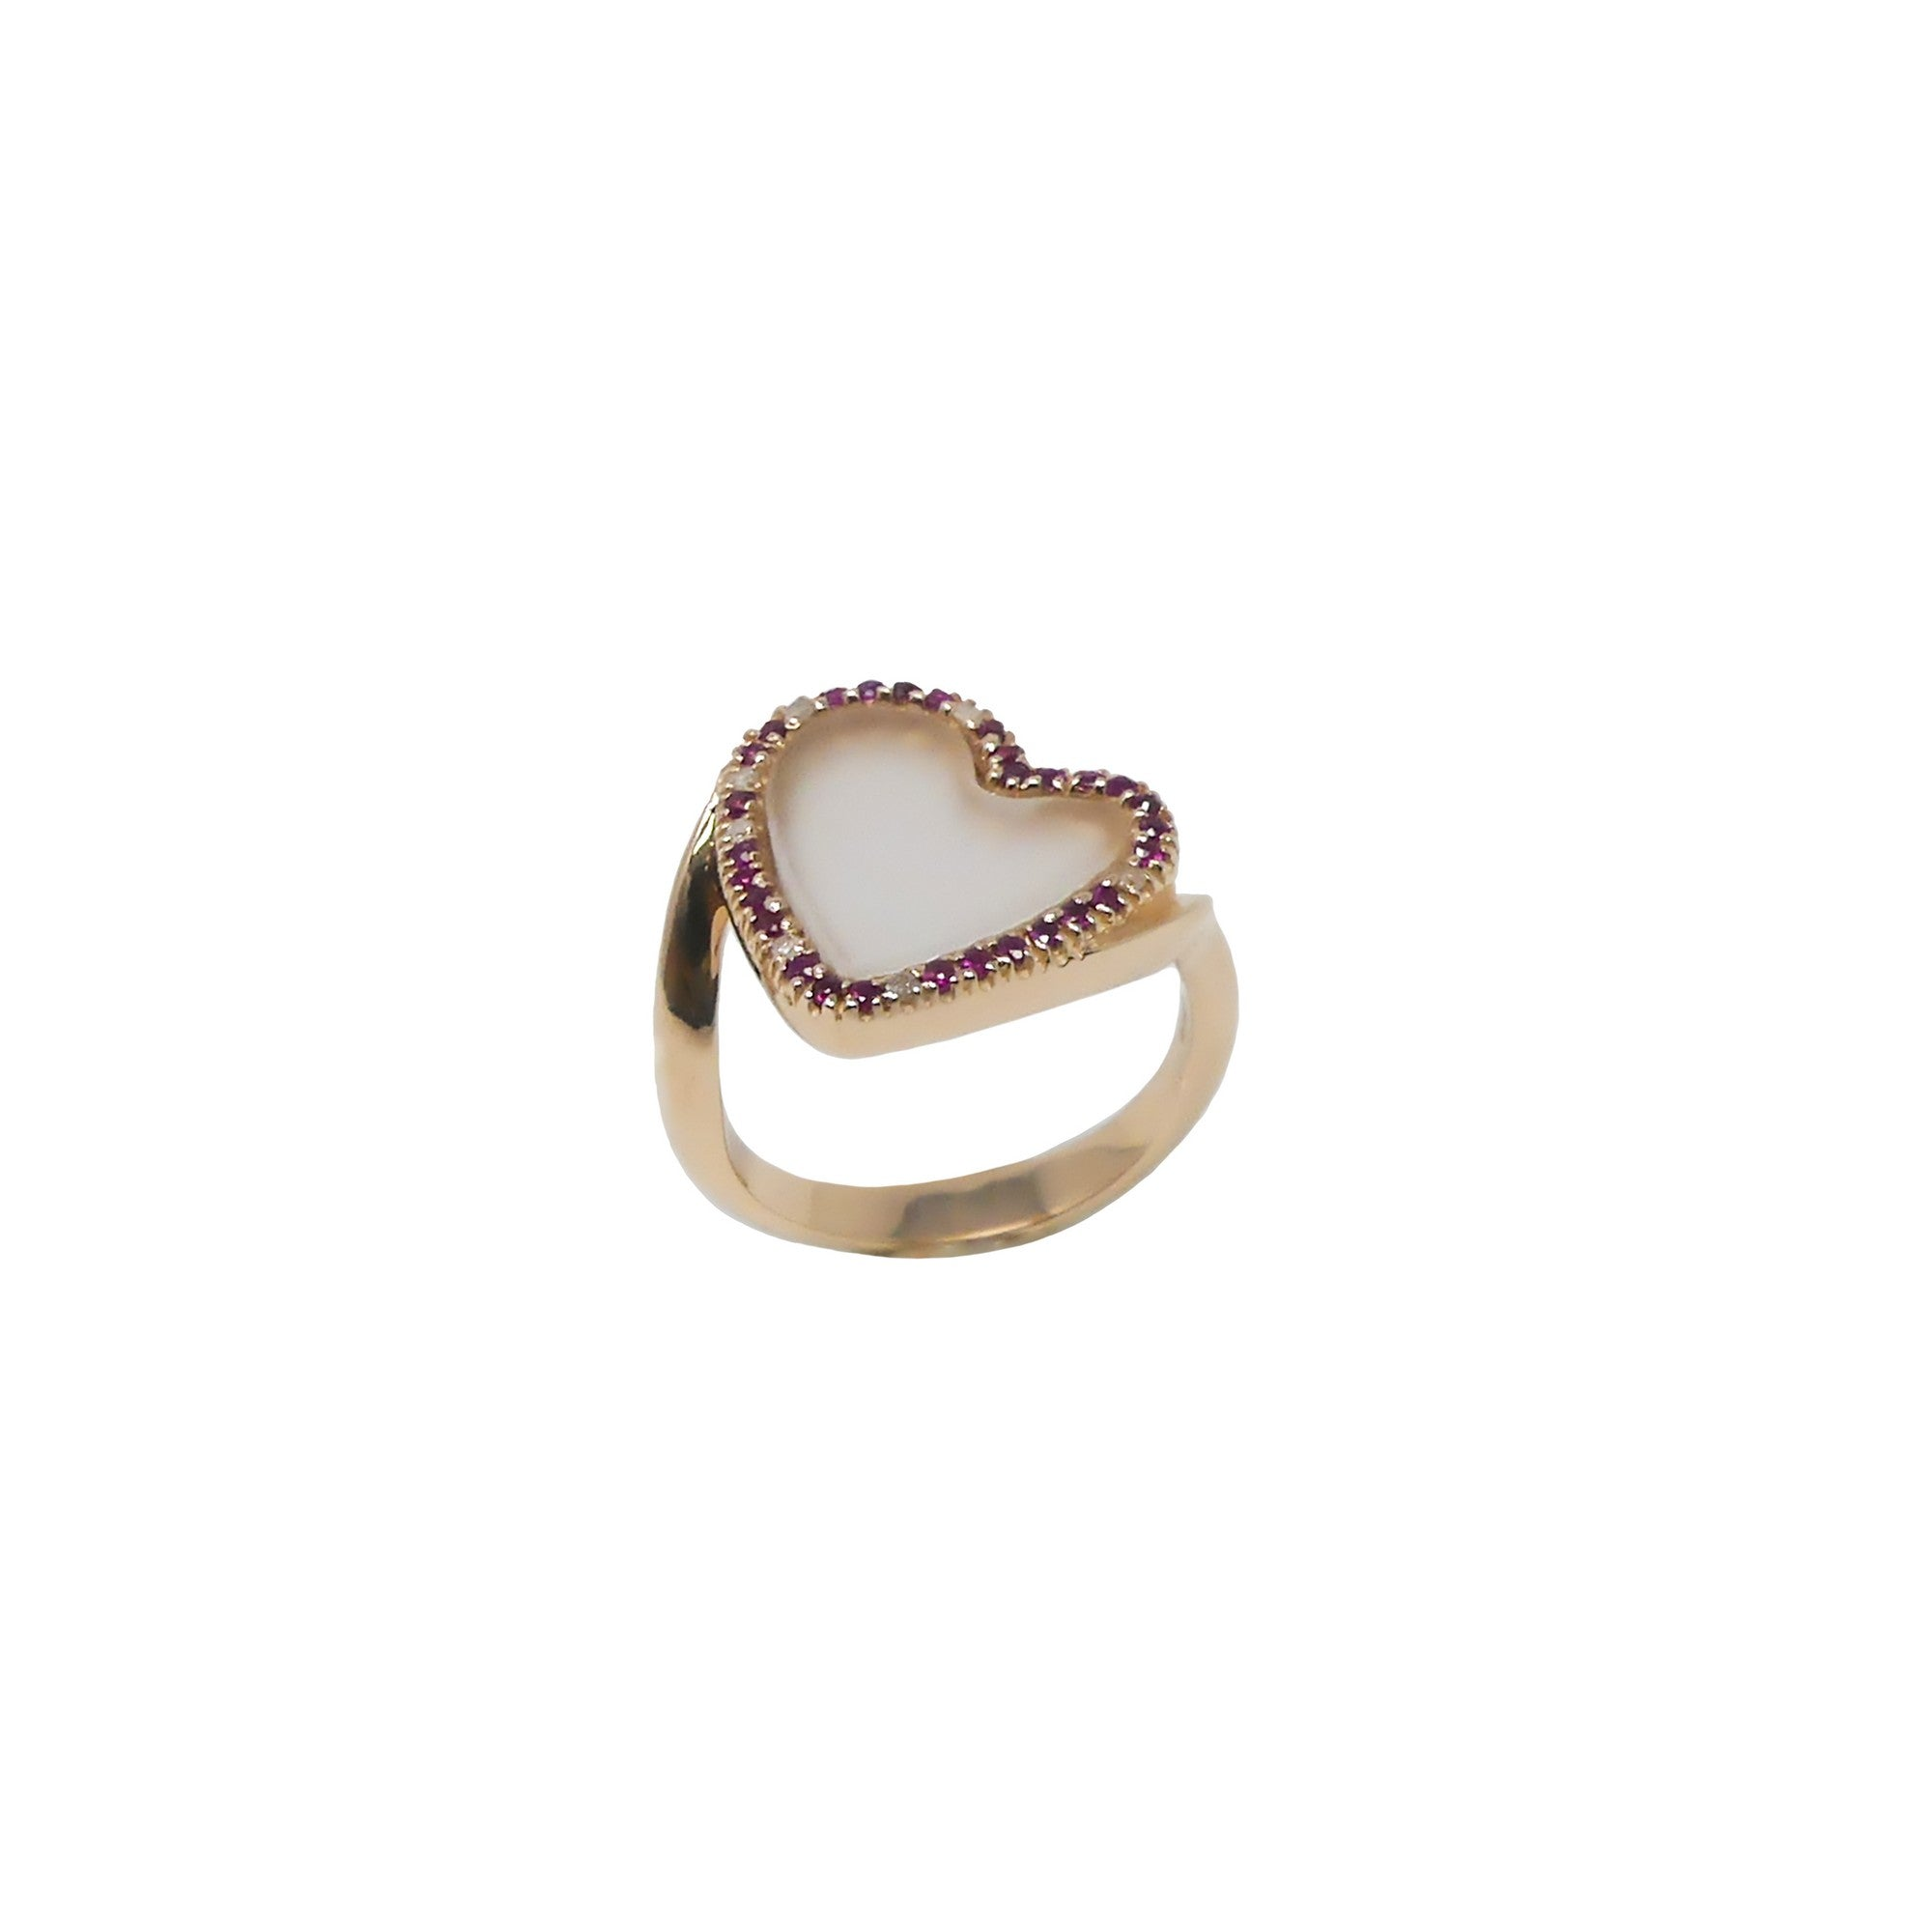 Pria De Ma 9kt Rose Gold Ring Ice Diamonds Rubies